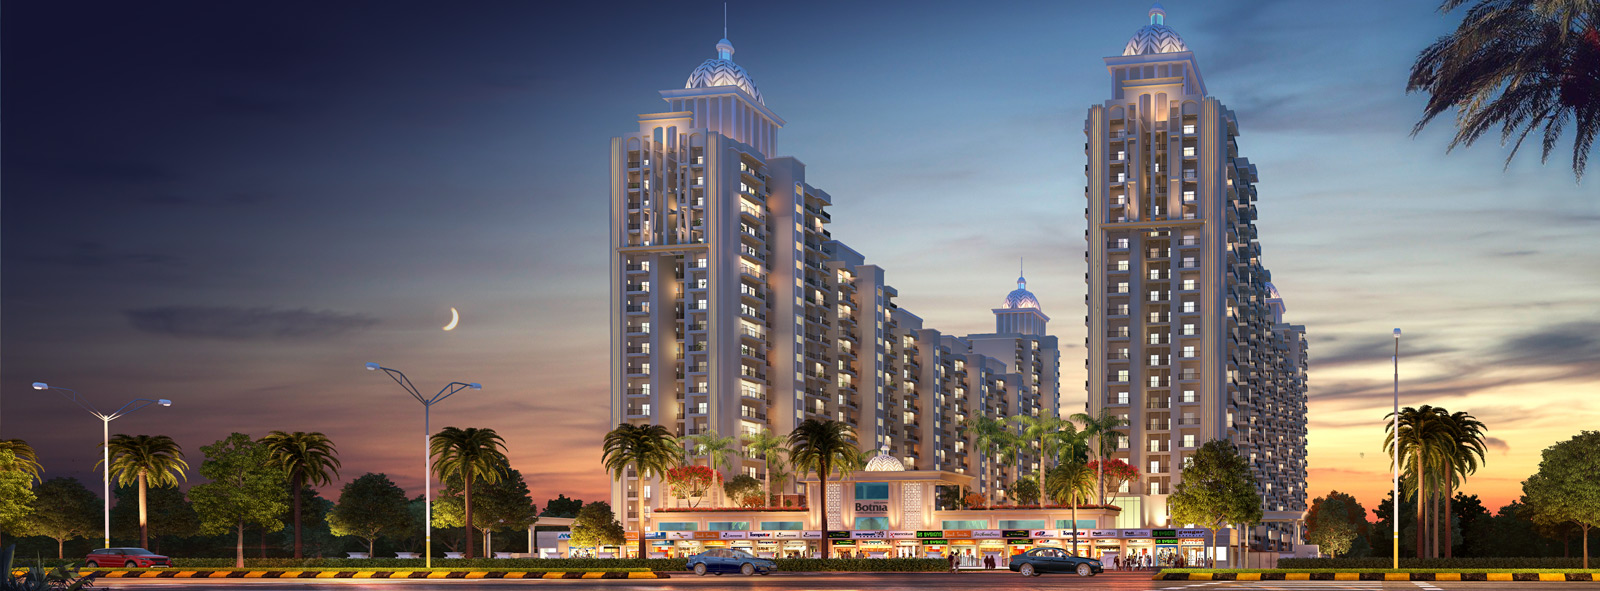 Noida Upcoming Projects